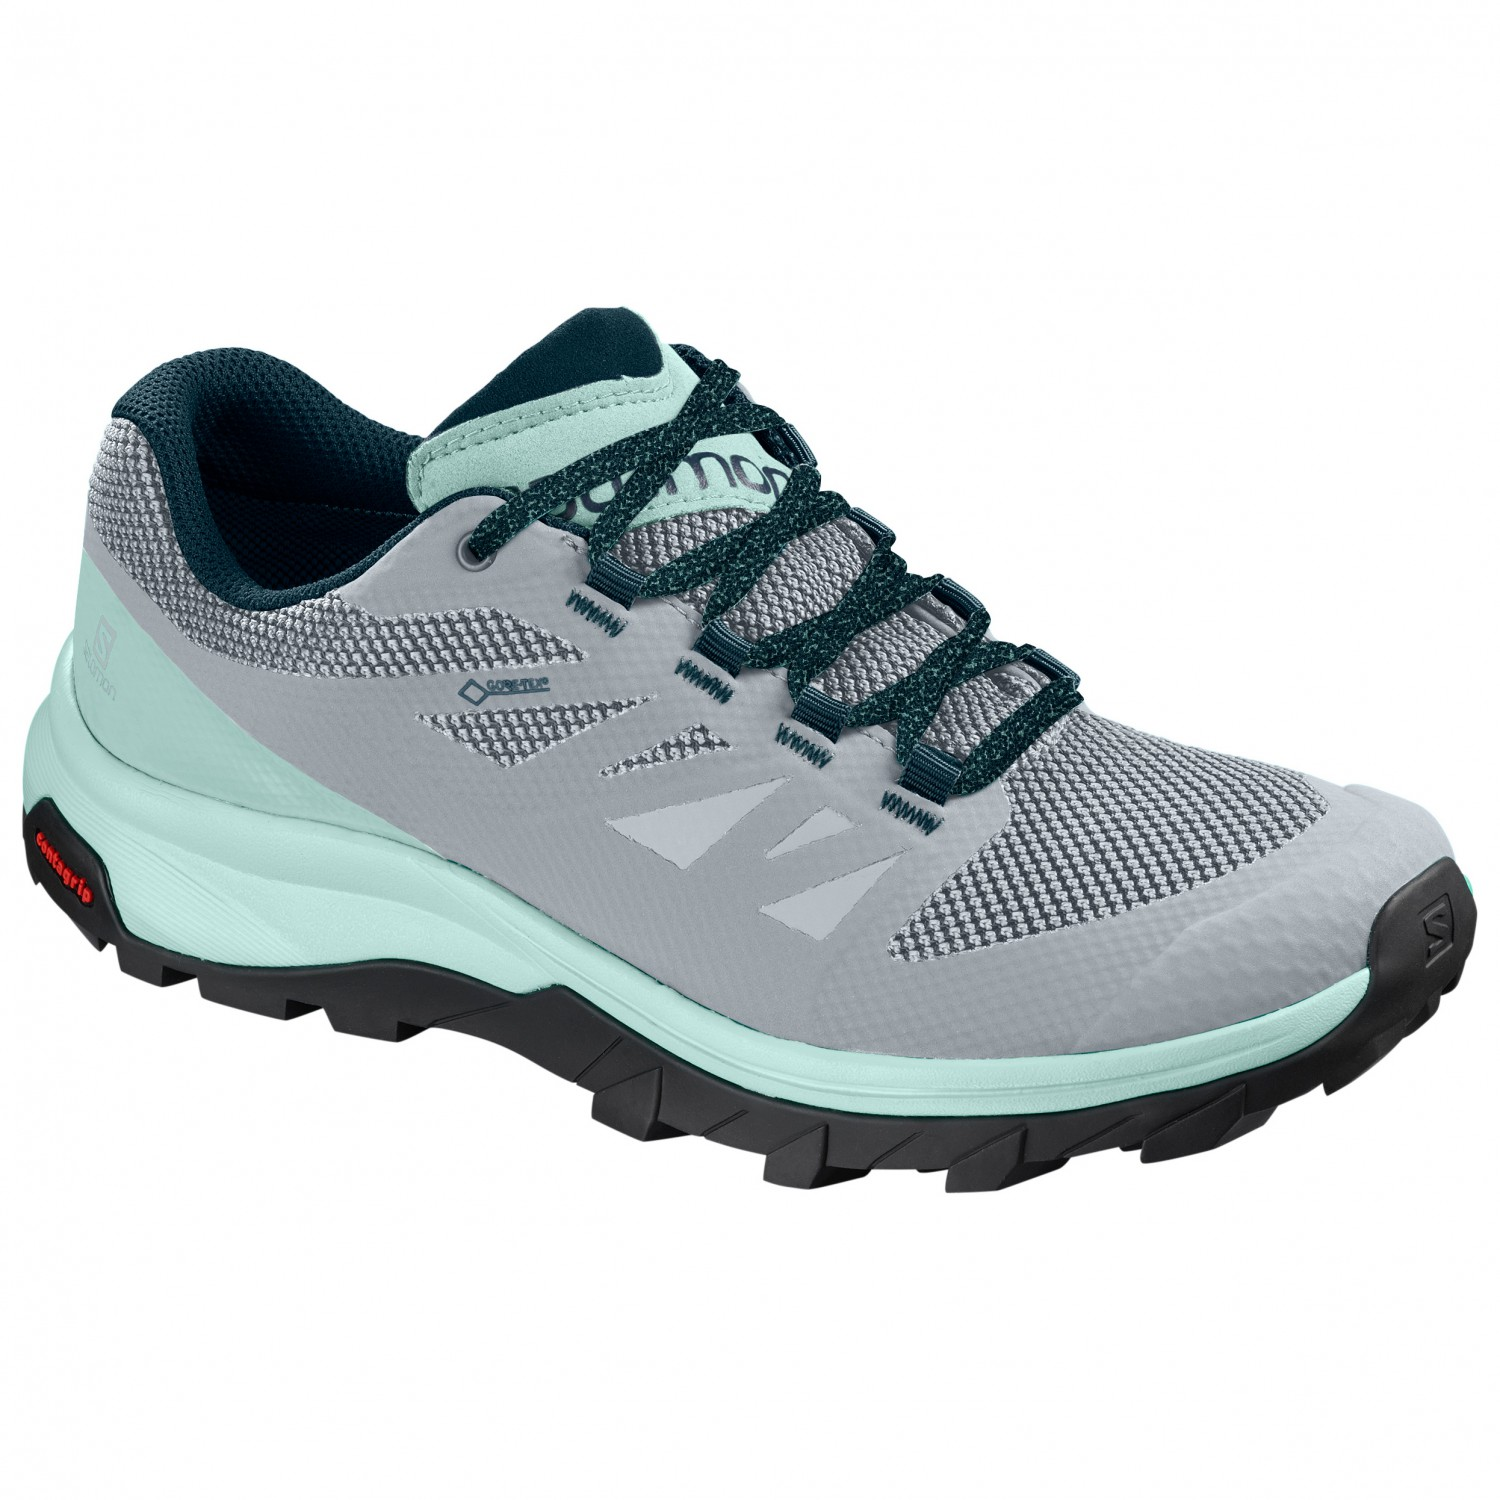 Salomon Outline GTX Multisportschoenen Dames | Gratis